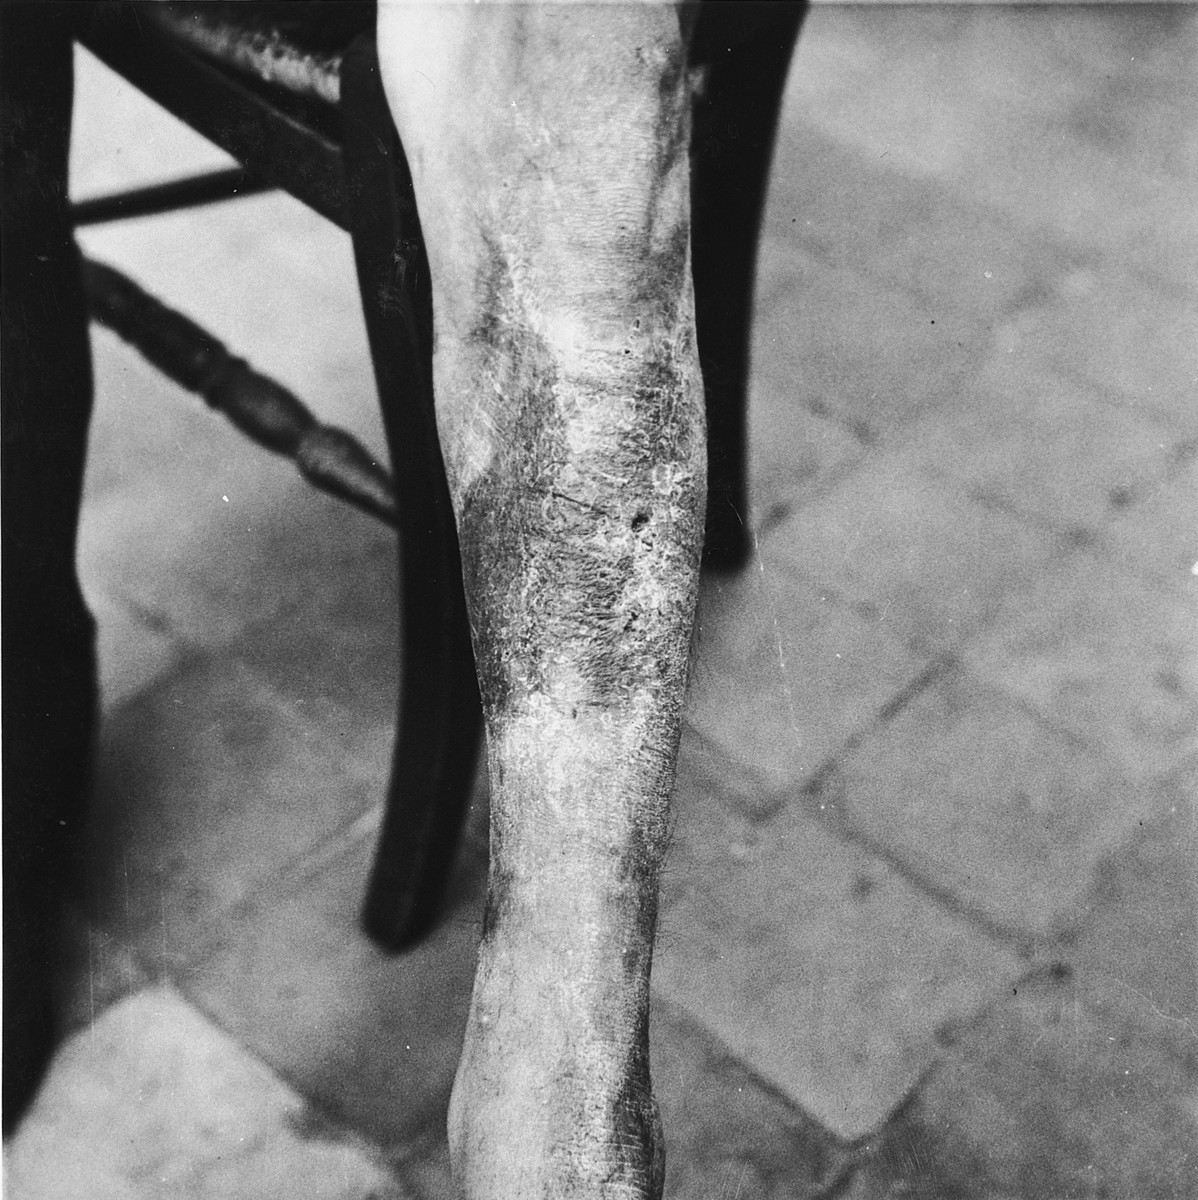 Emile Scieur shows the scarring on his leg that resulted from being beaten with a rubber truncheon in the Breendonck internment camp.